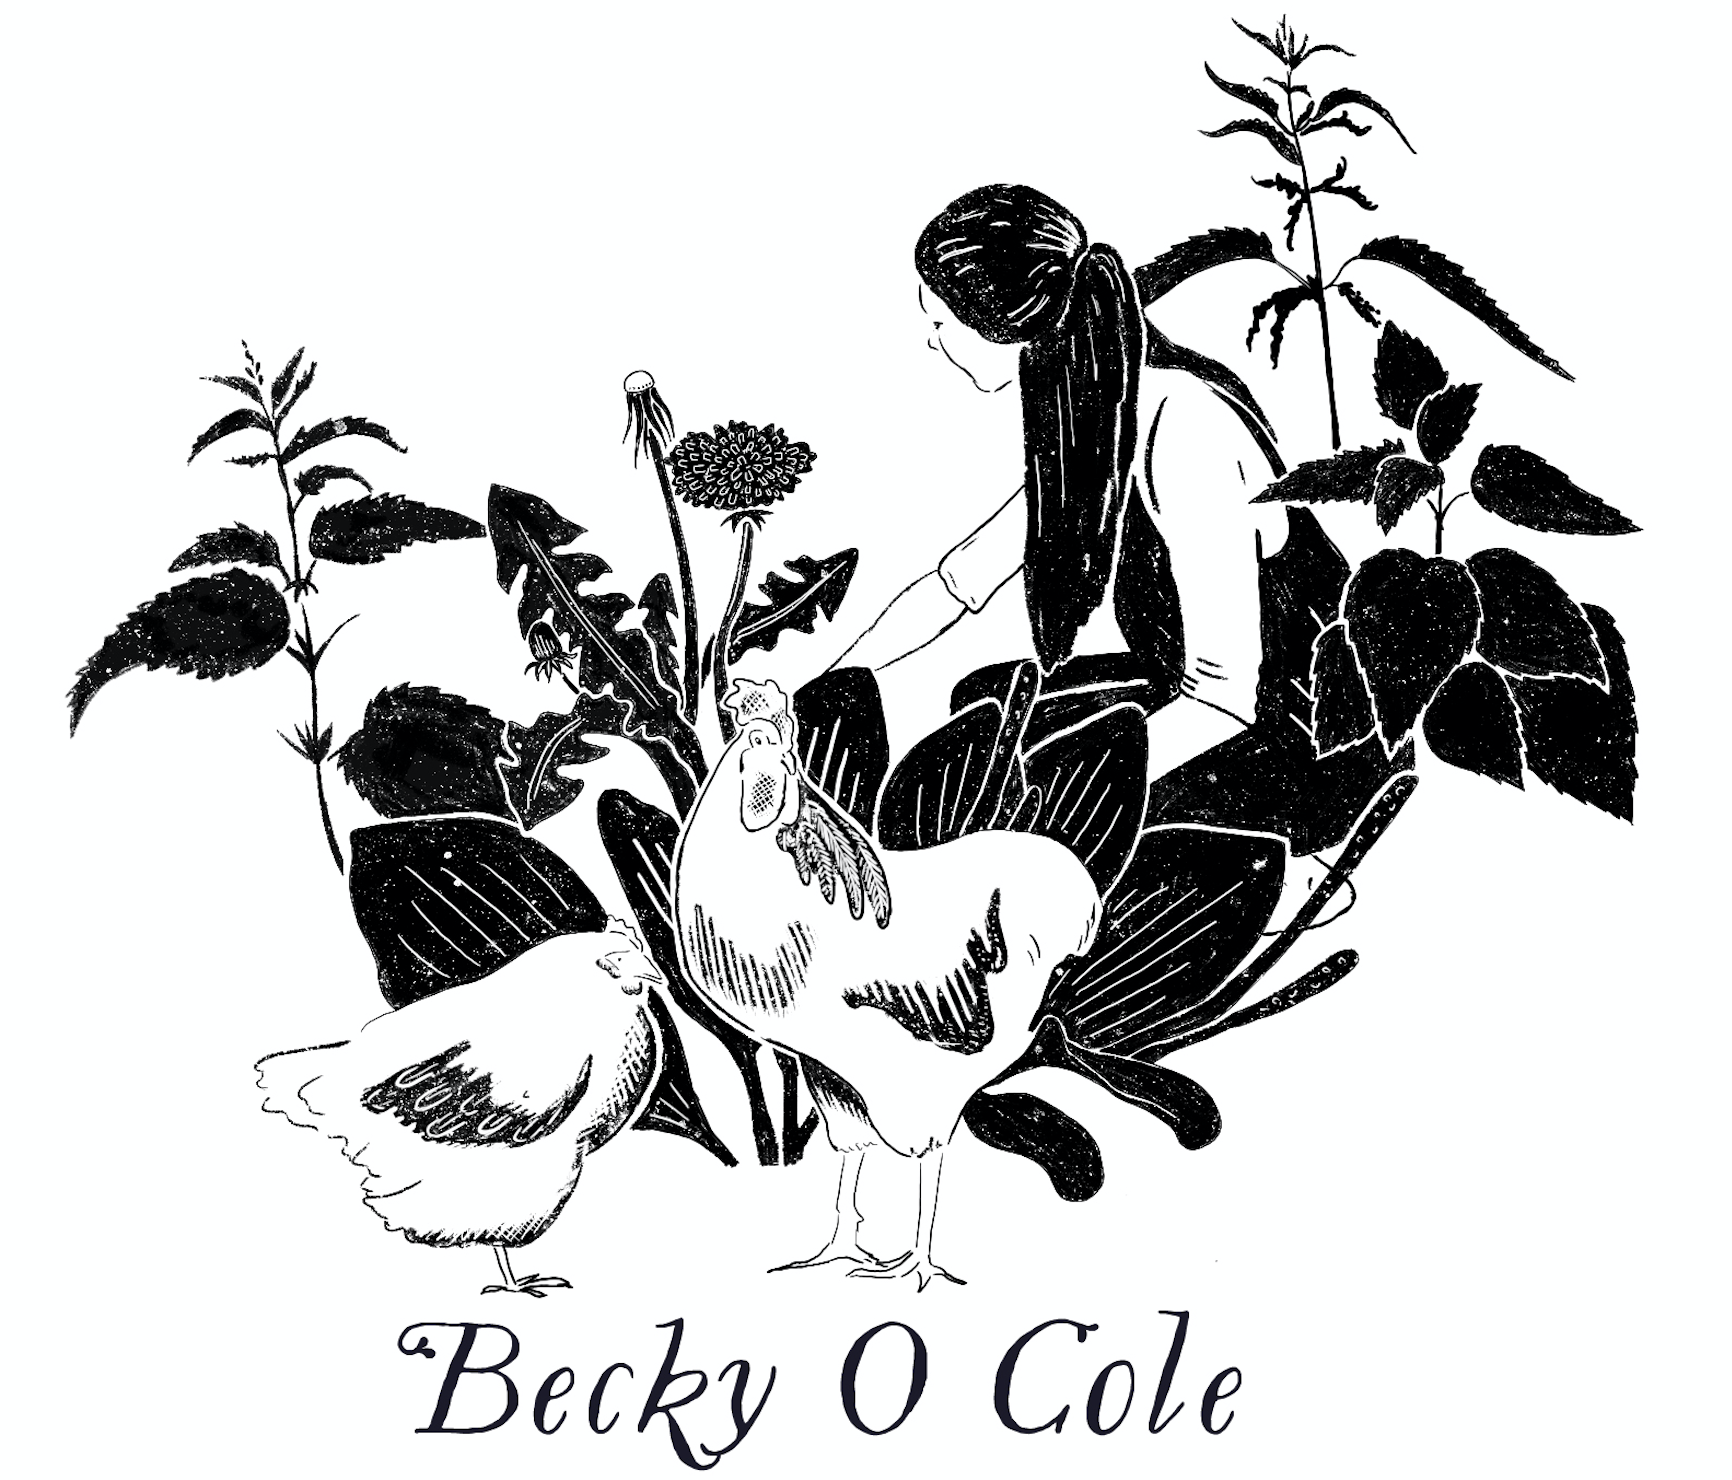 Becky O Cole | Slow Living, Herbalism, Gardening, Motherhood Cottage Life